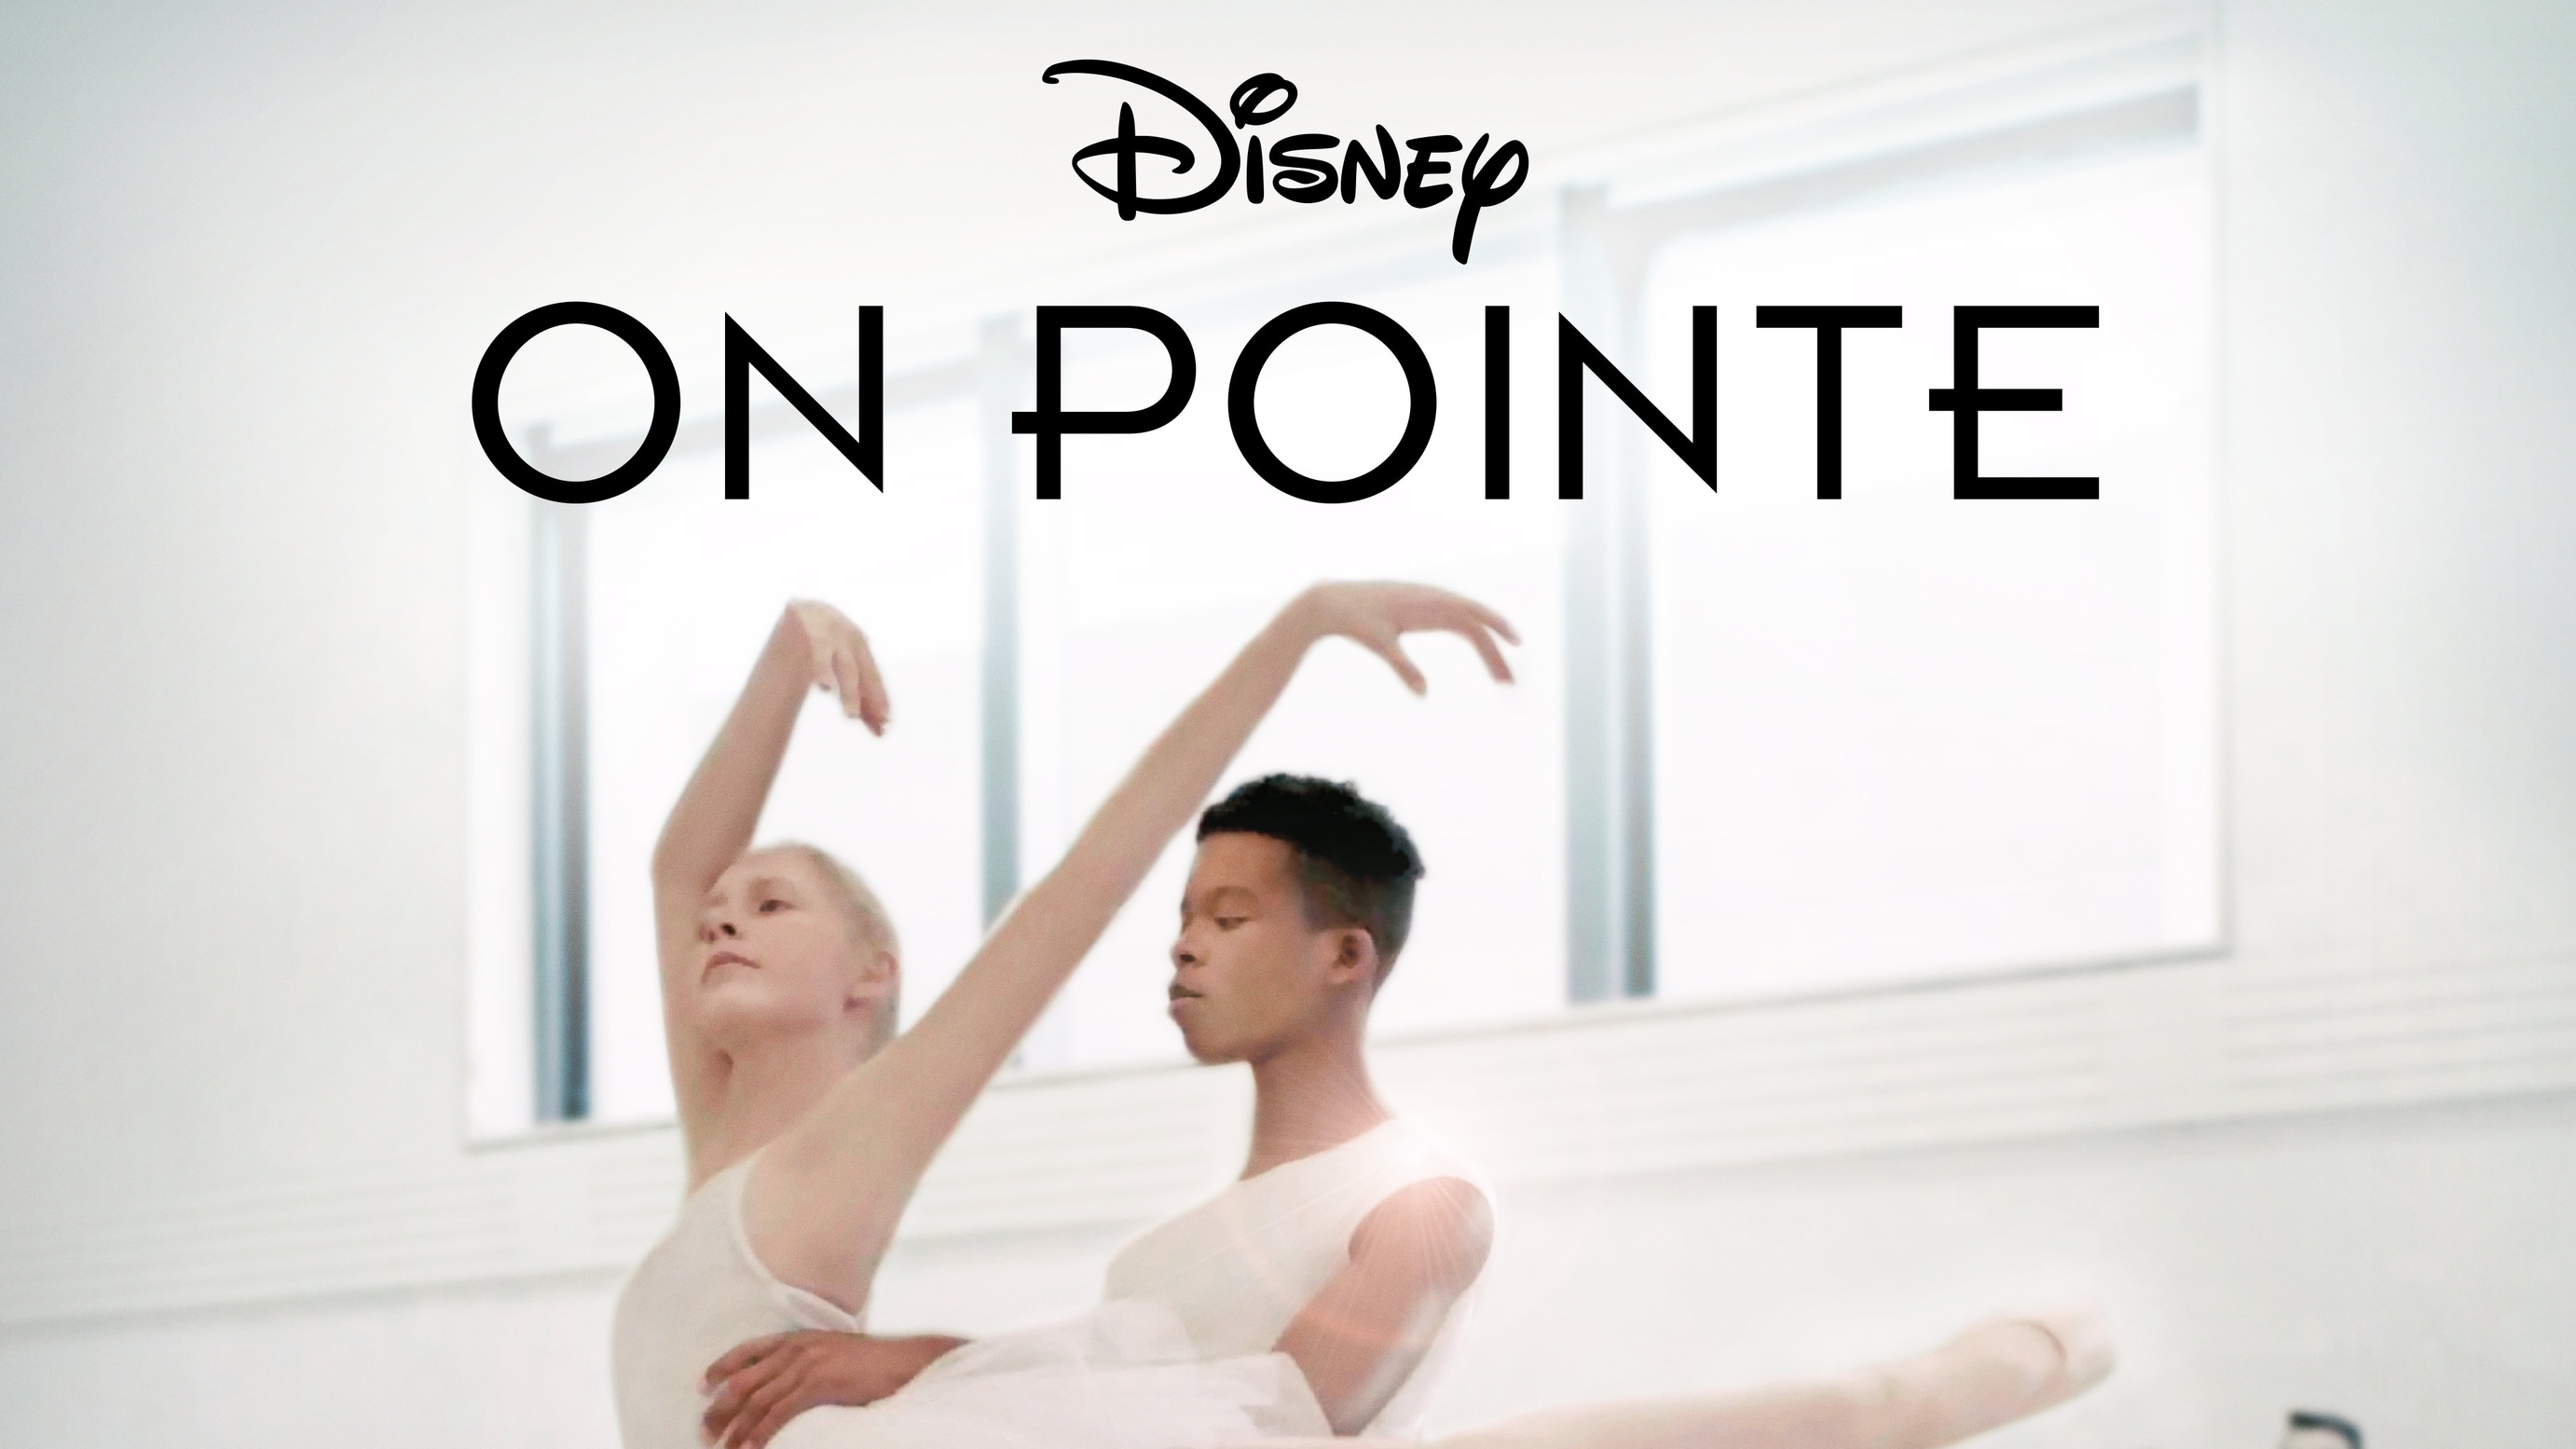 On Pointe Key Art - Vertical